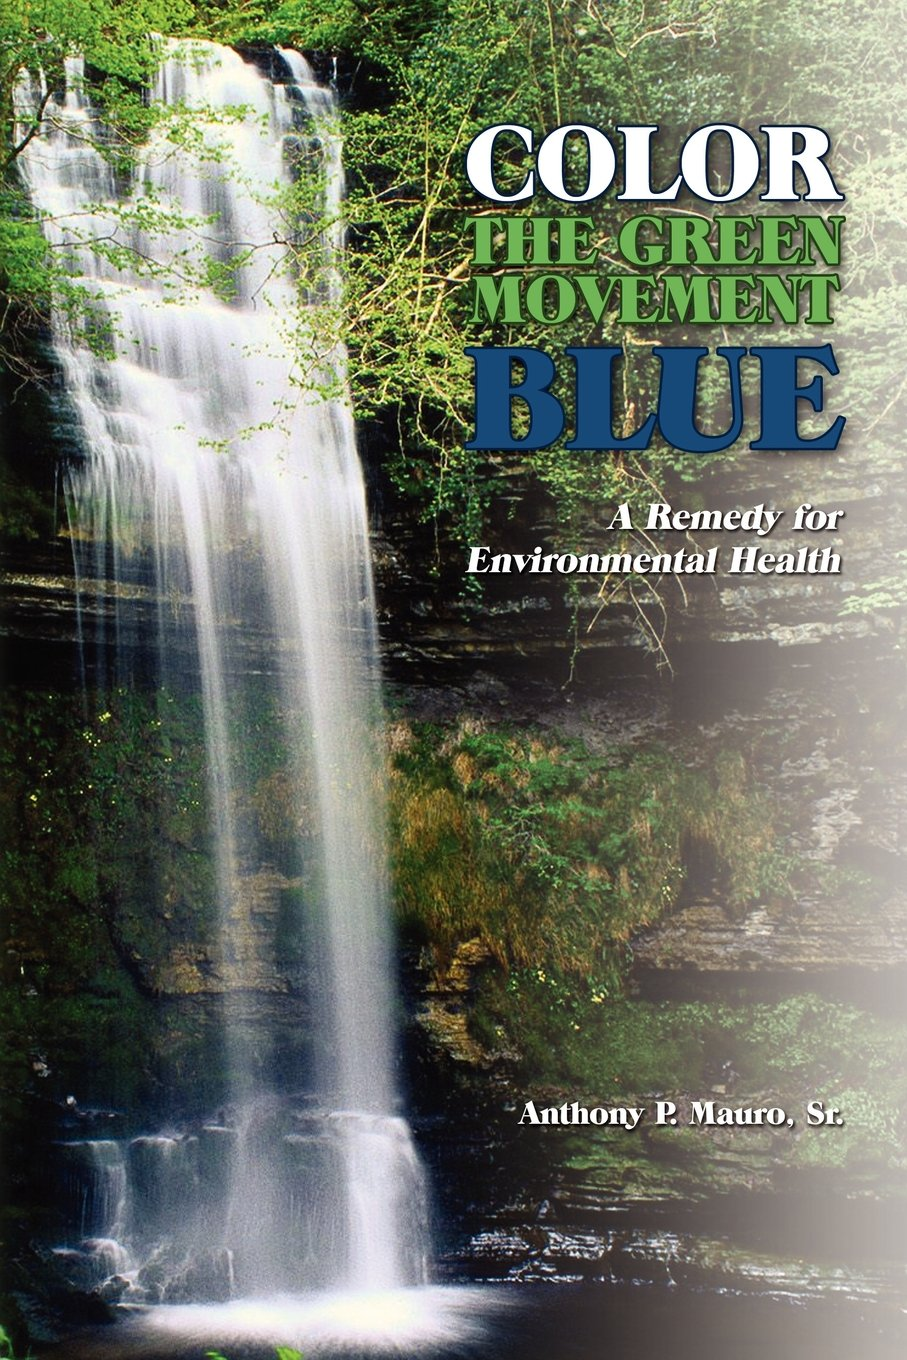 Color the Green Movement Blue: A Remedy for Environmental Health